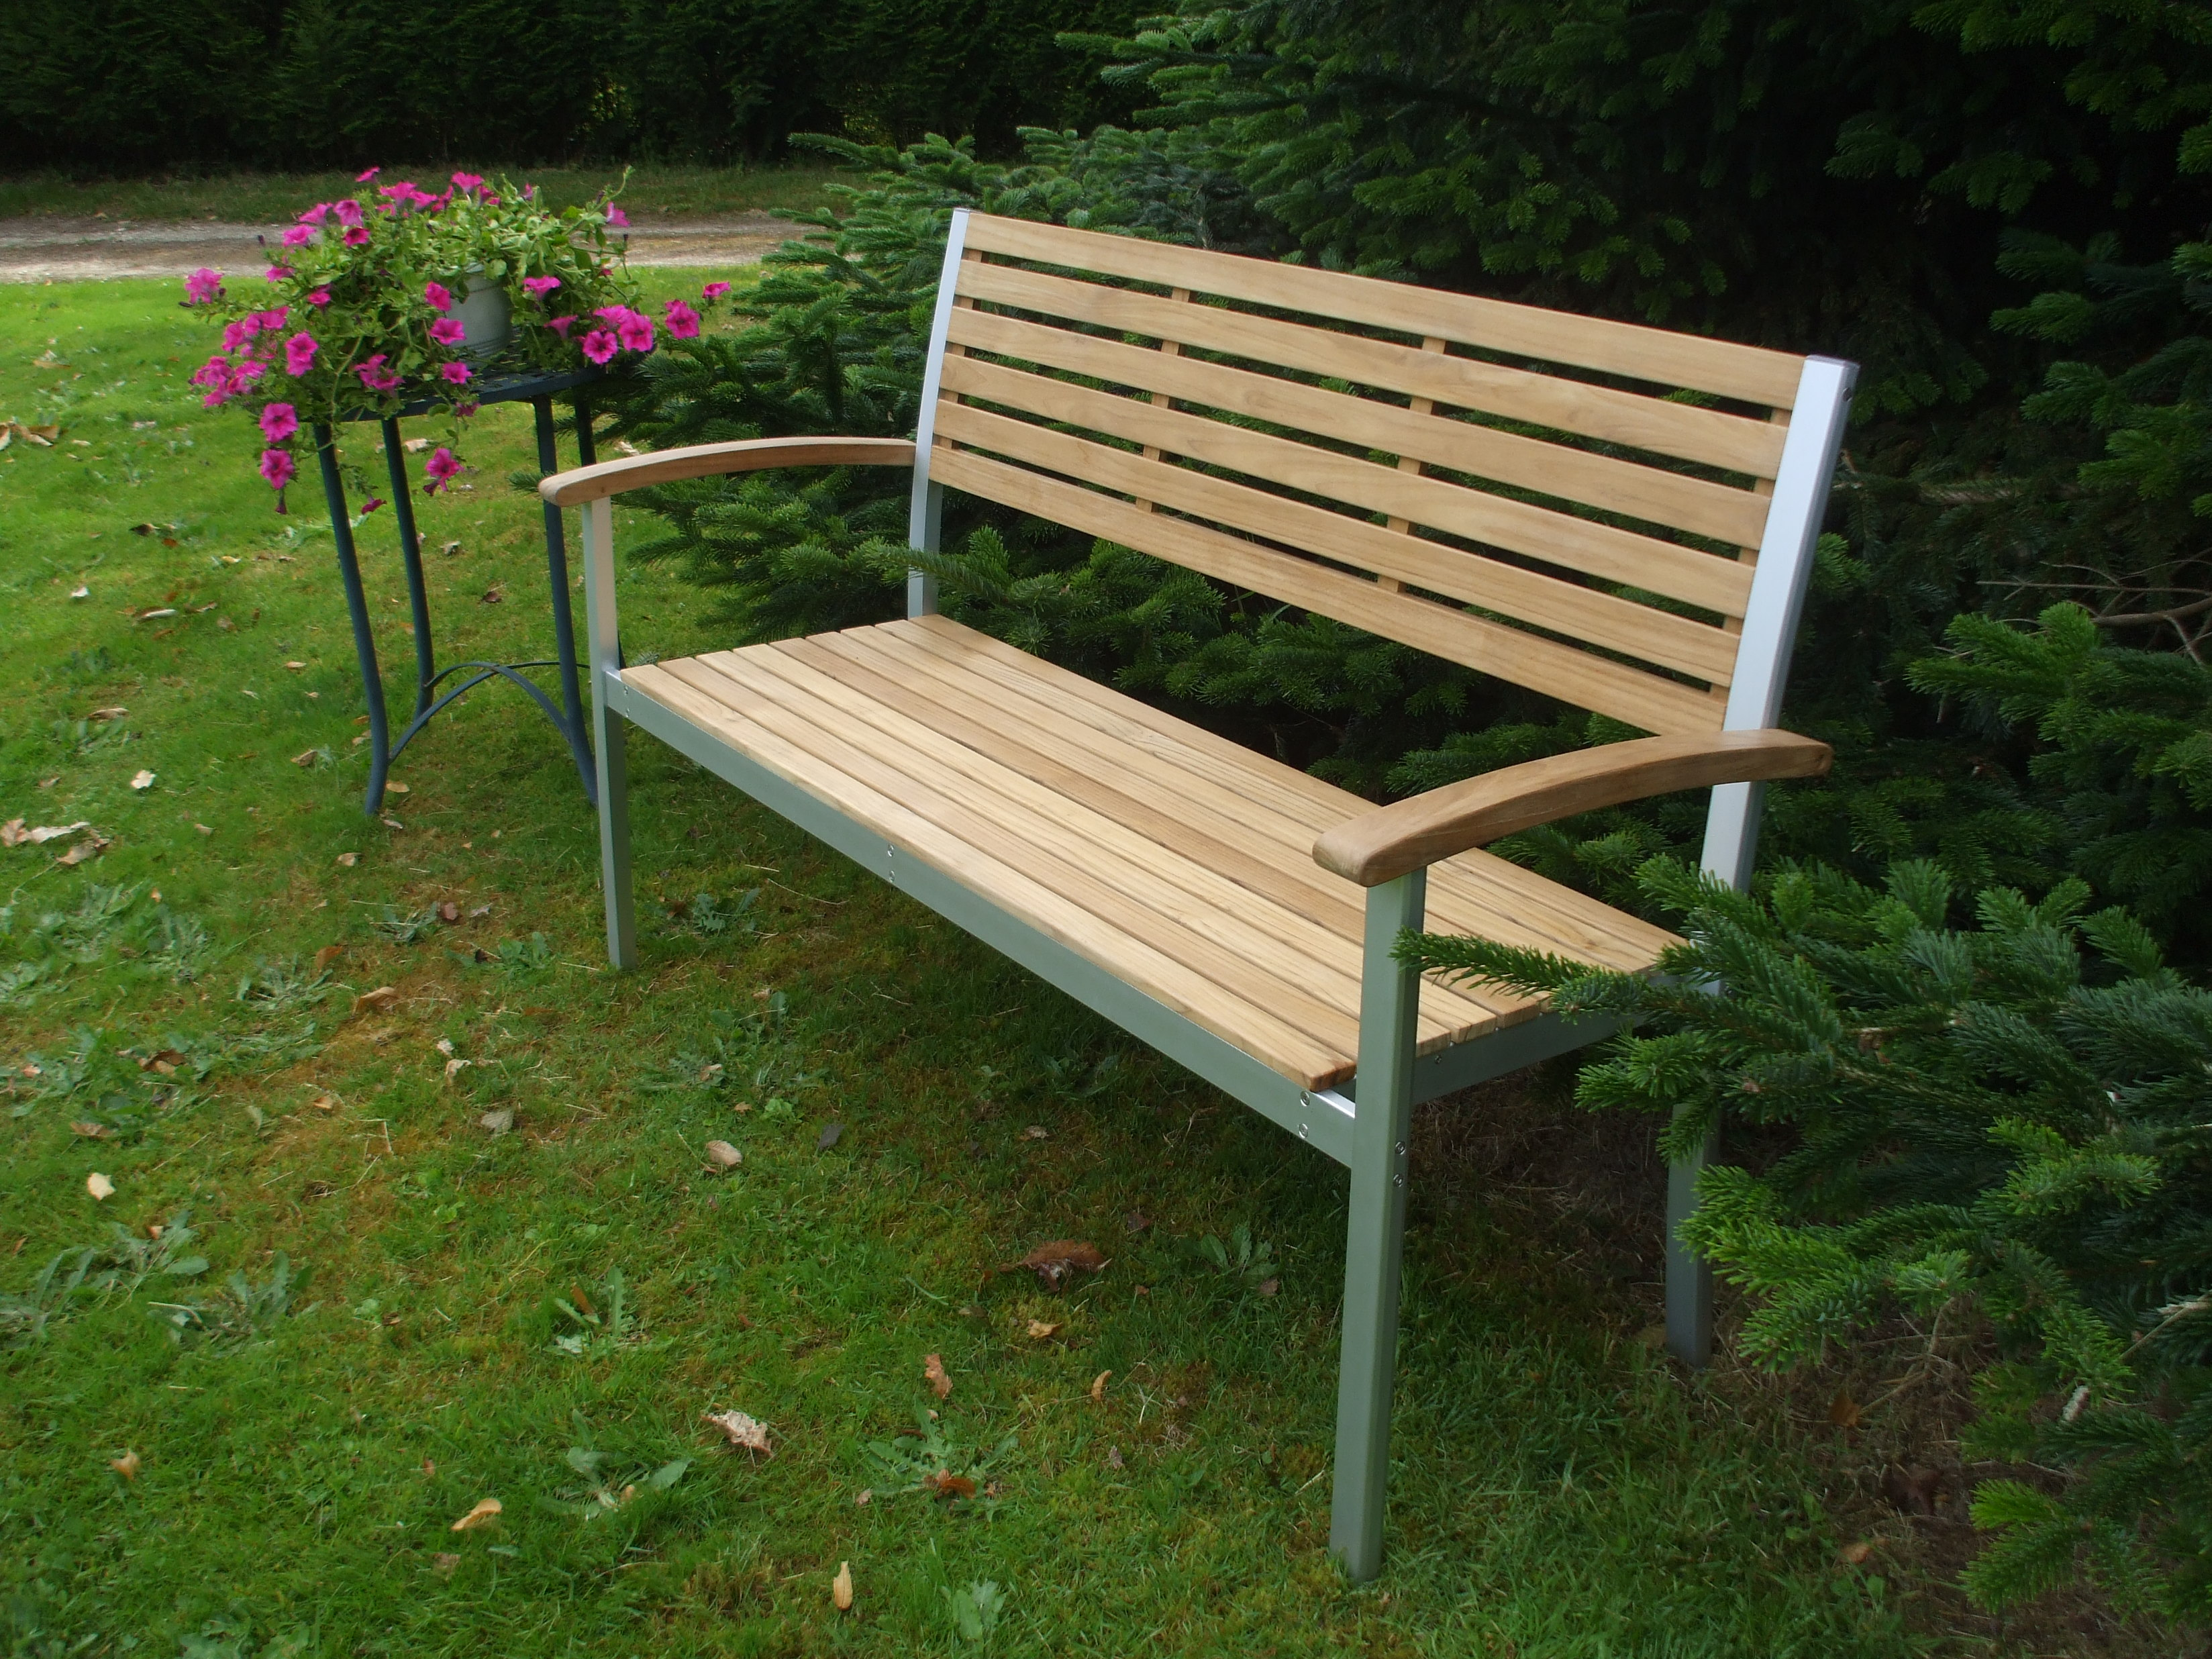 Banc de jardin for Conception jardin fontrobert